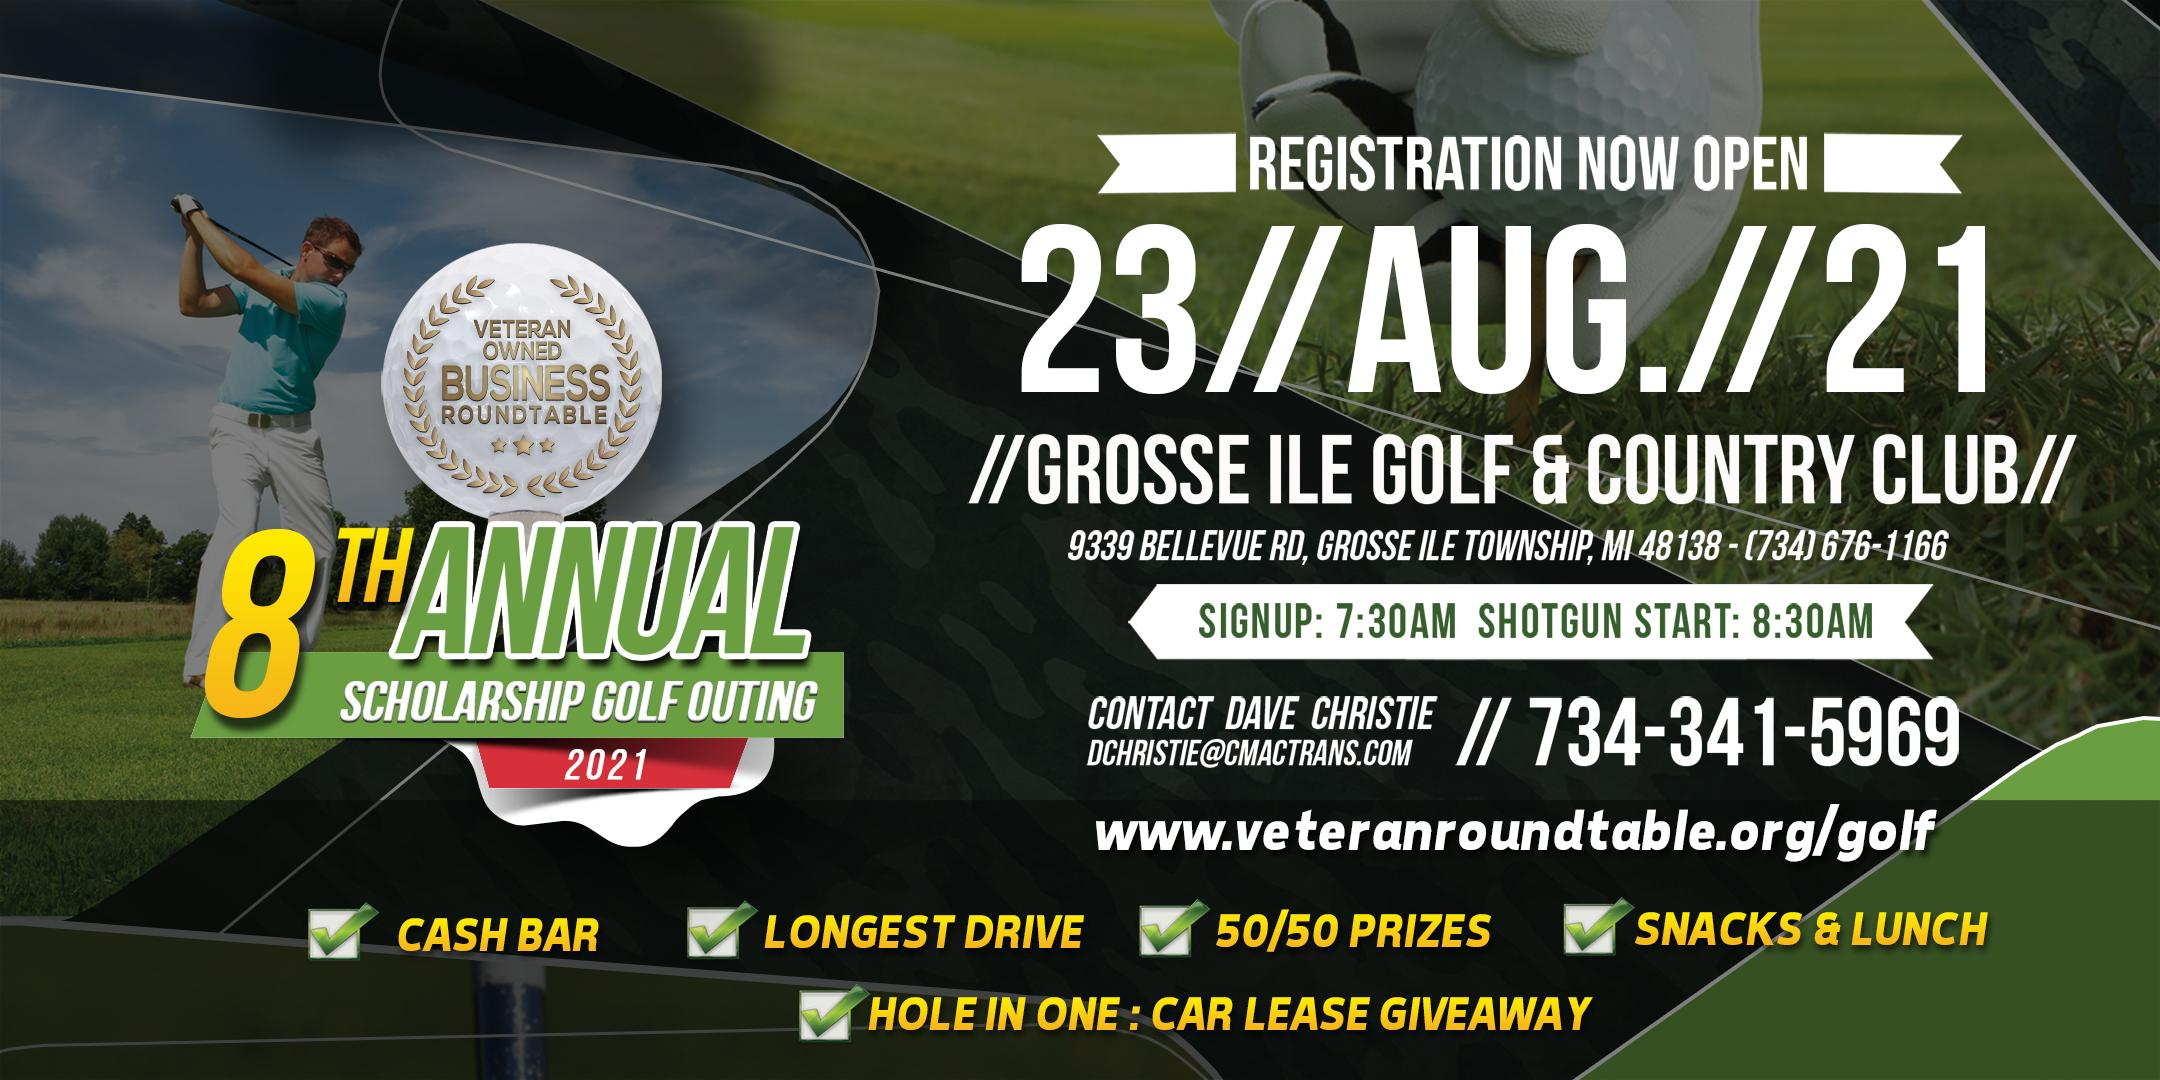 8th Annual Veteran Owned Business Roundtable Scholarship Golf Outing 2021